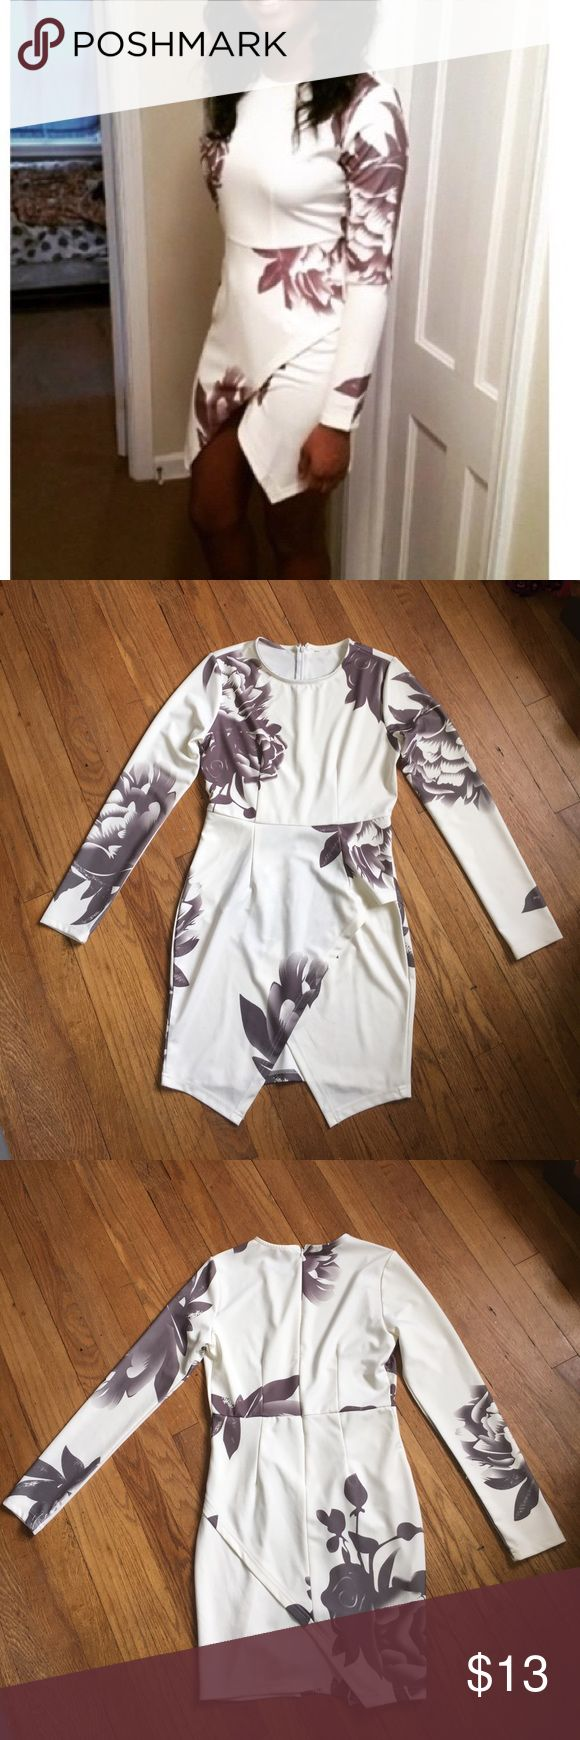 Floral Bodycon Dress Long sleeve white dress with grey flowers. Size large. Worn once. Polyester and spandex material. Dresses Long Sleeve